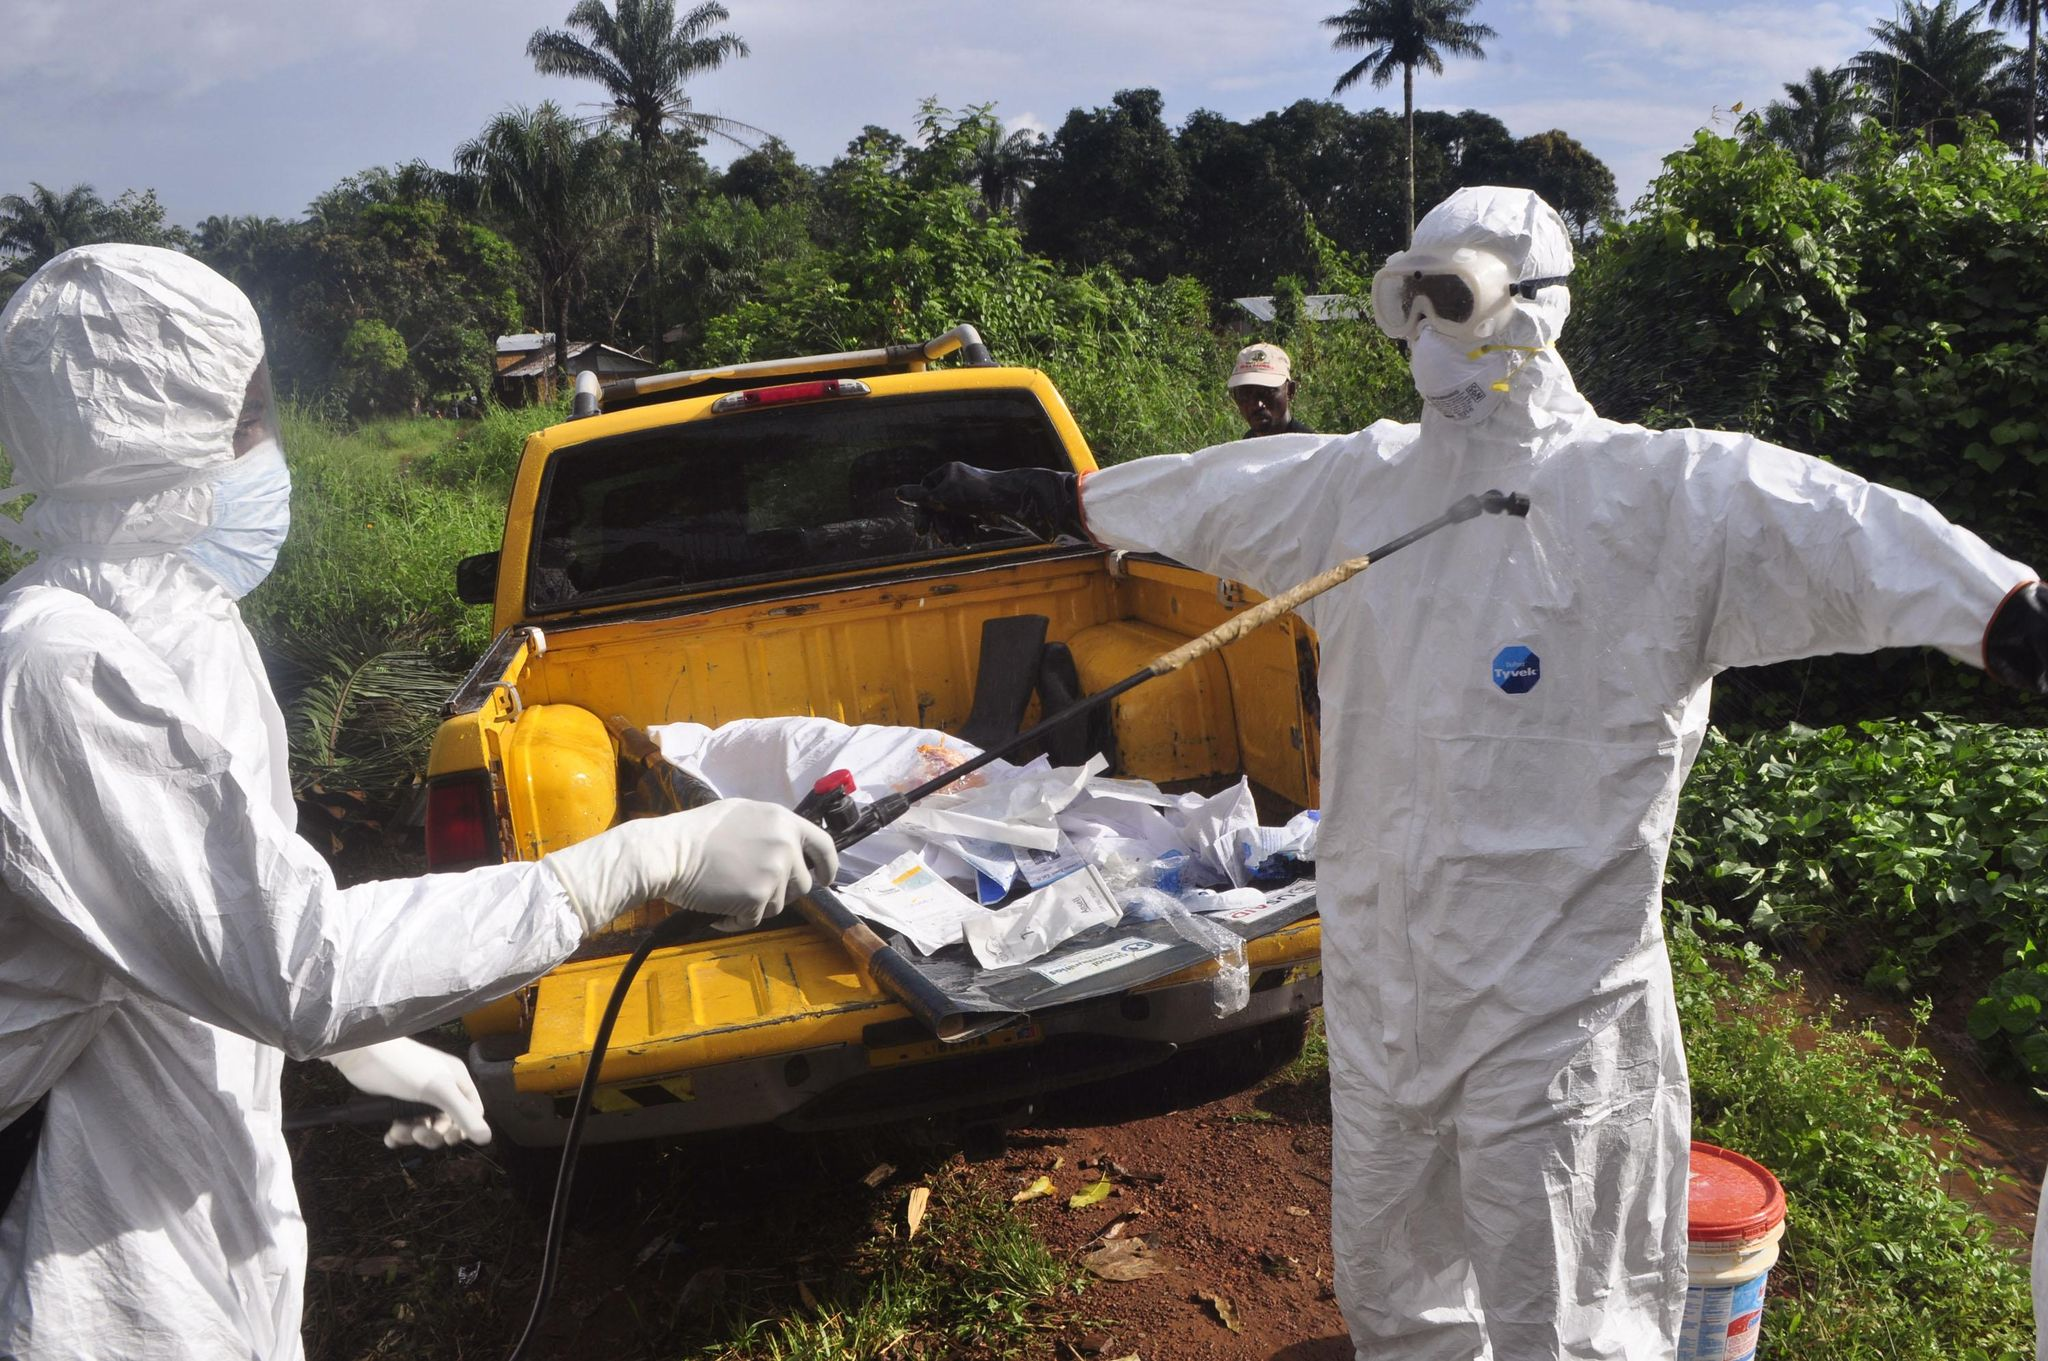 CDC admits Ebola can be passed to others by sneezing